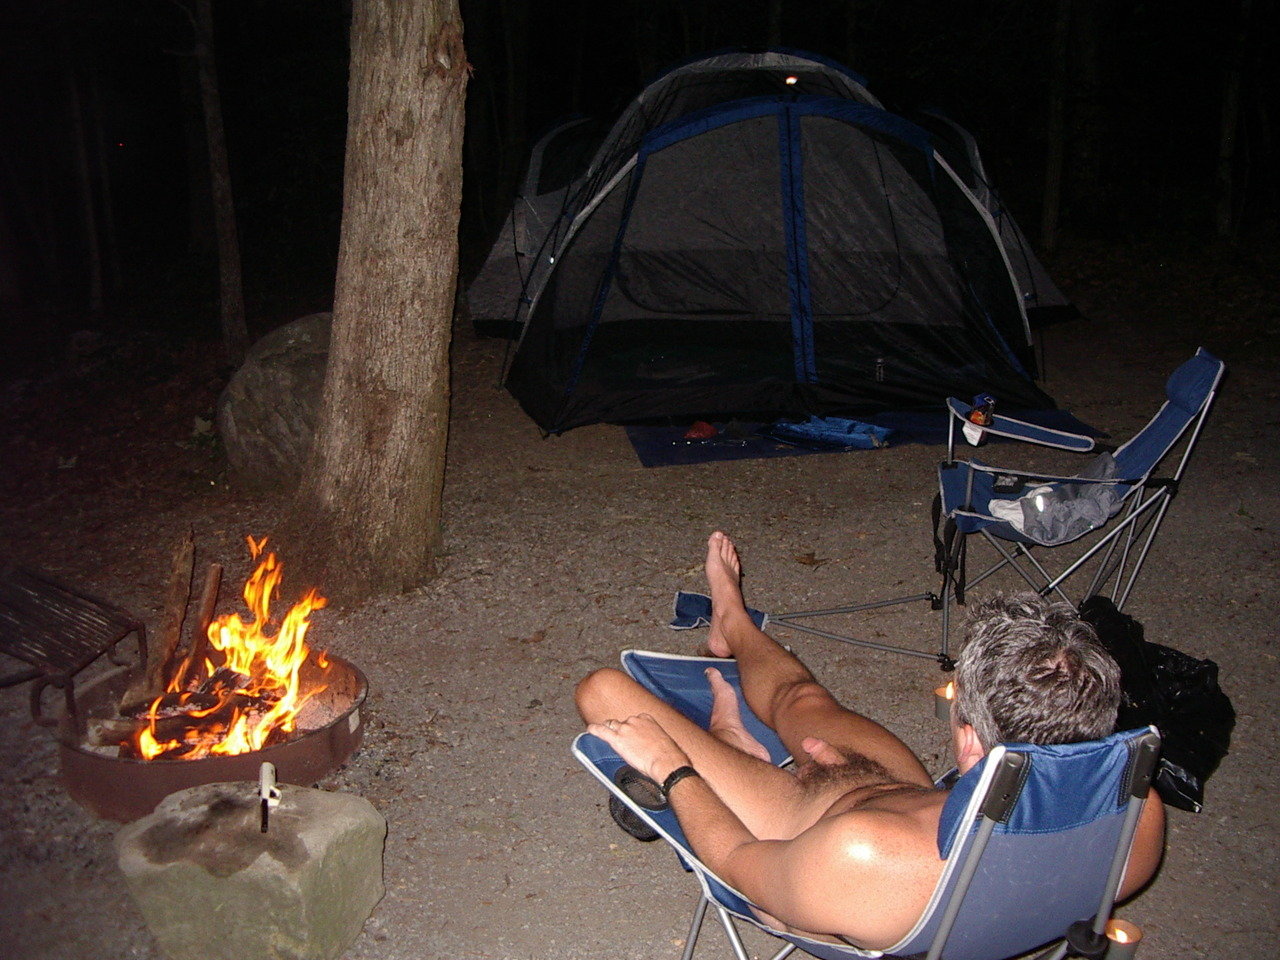 Hardcore Squirters All Male Naked Men Camping